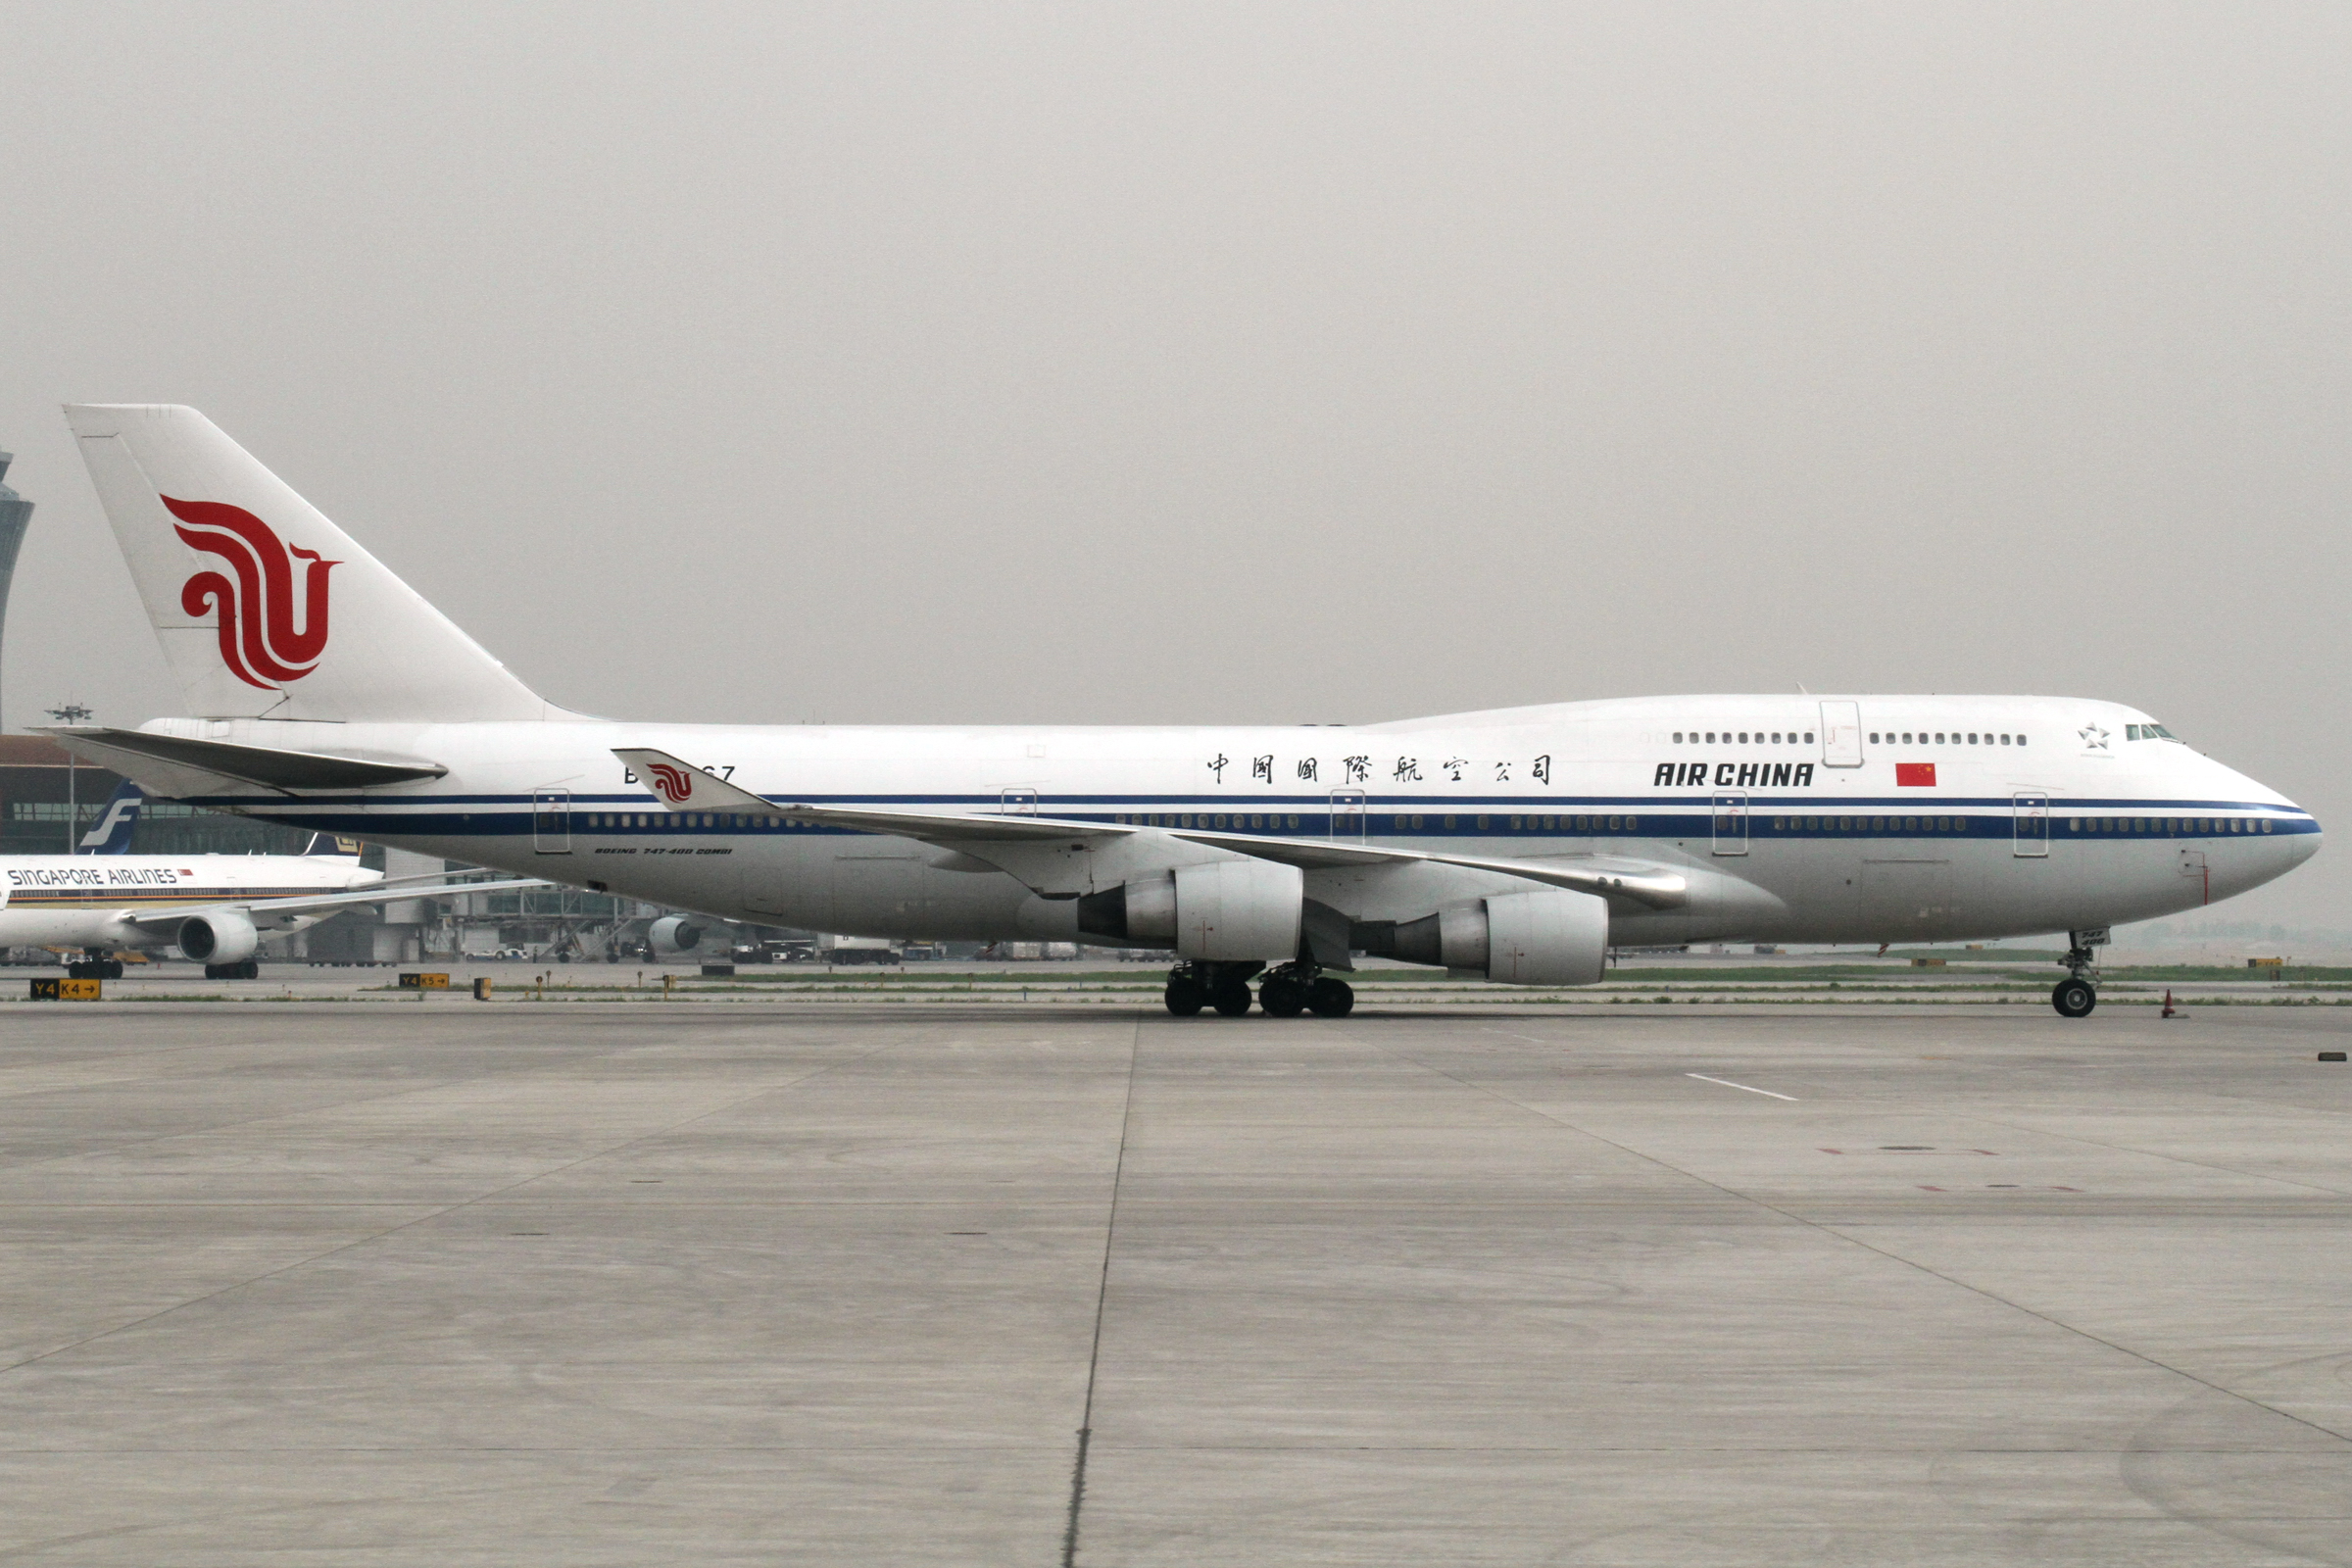 File:Air China B747-400M(B-2467) (4612039910).